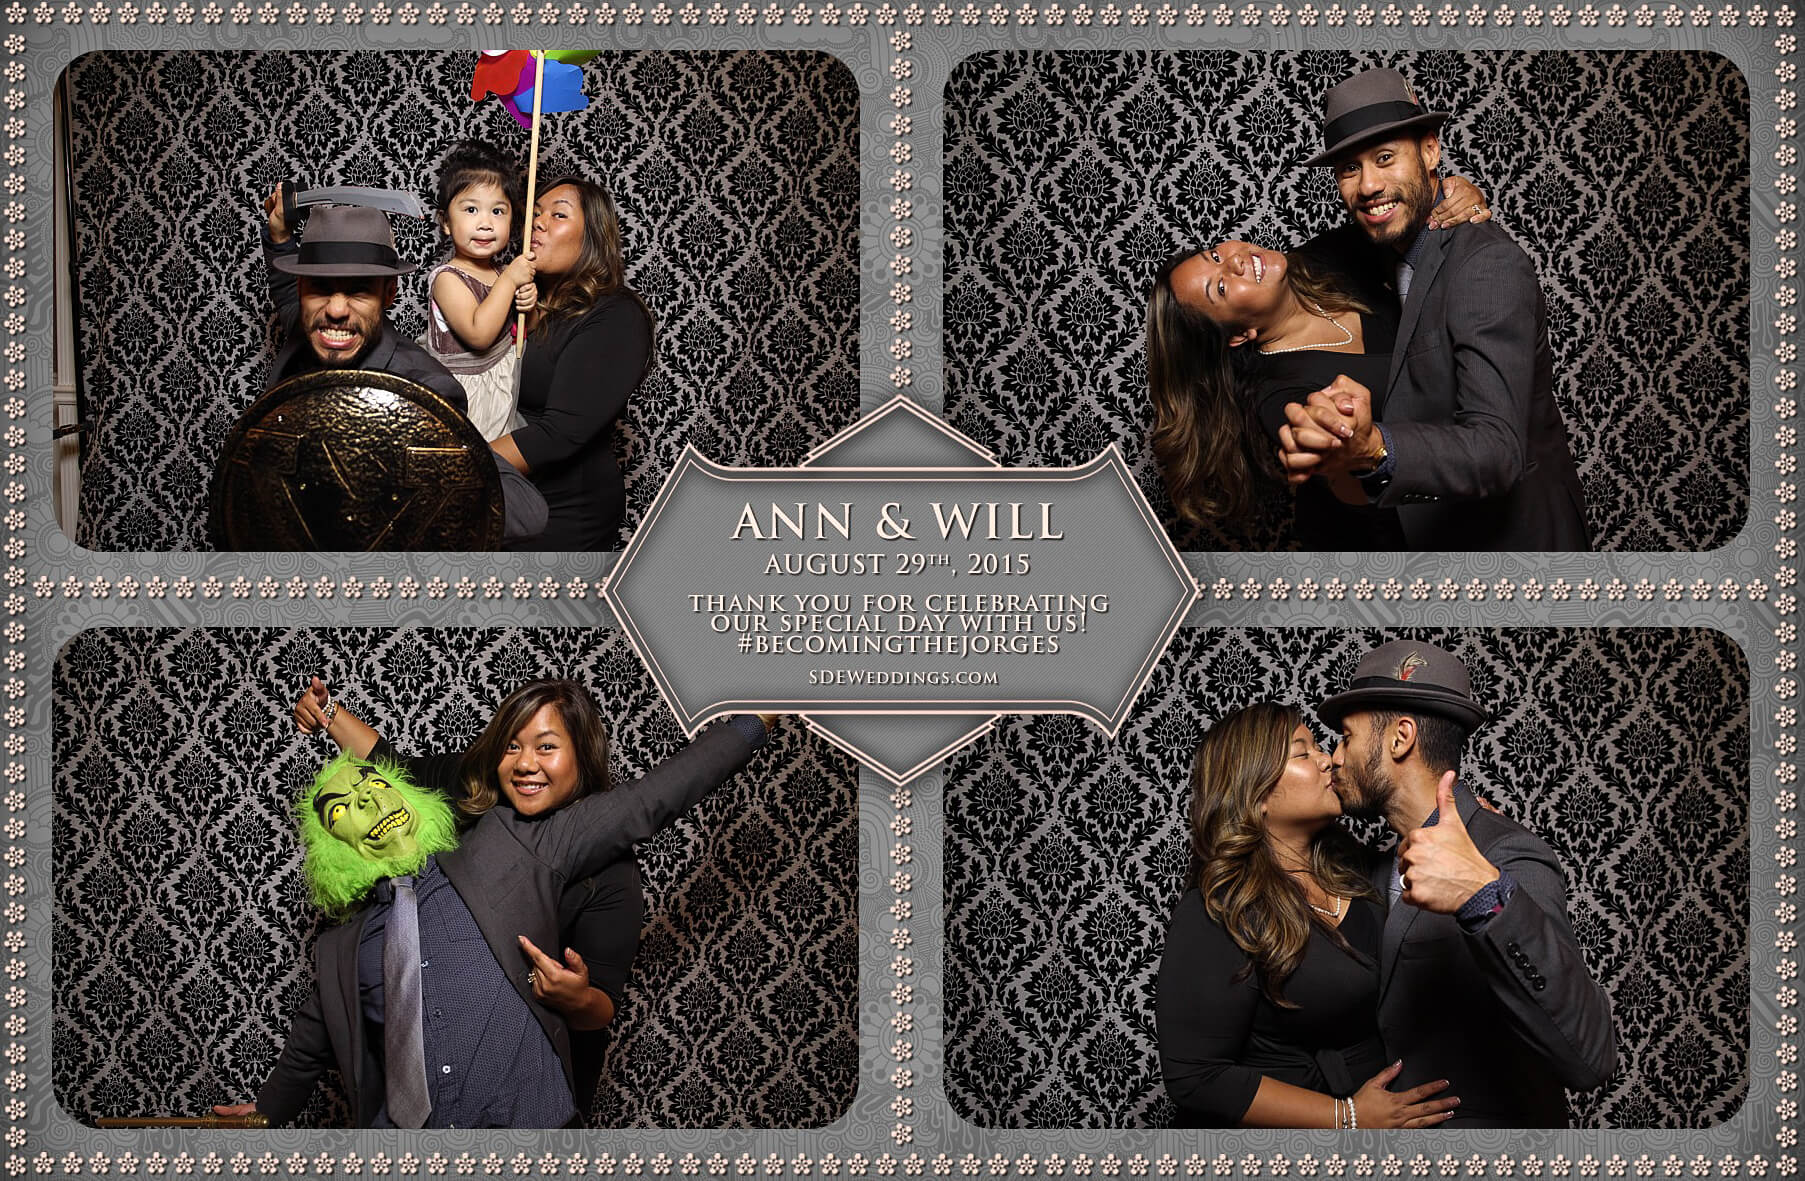 Toronto Wedding Photo Booth at Destiny Banquet Hall 8